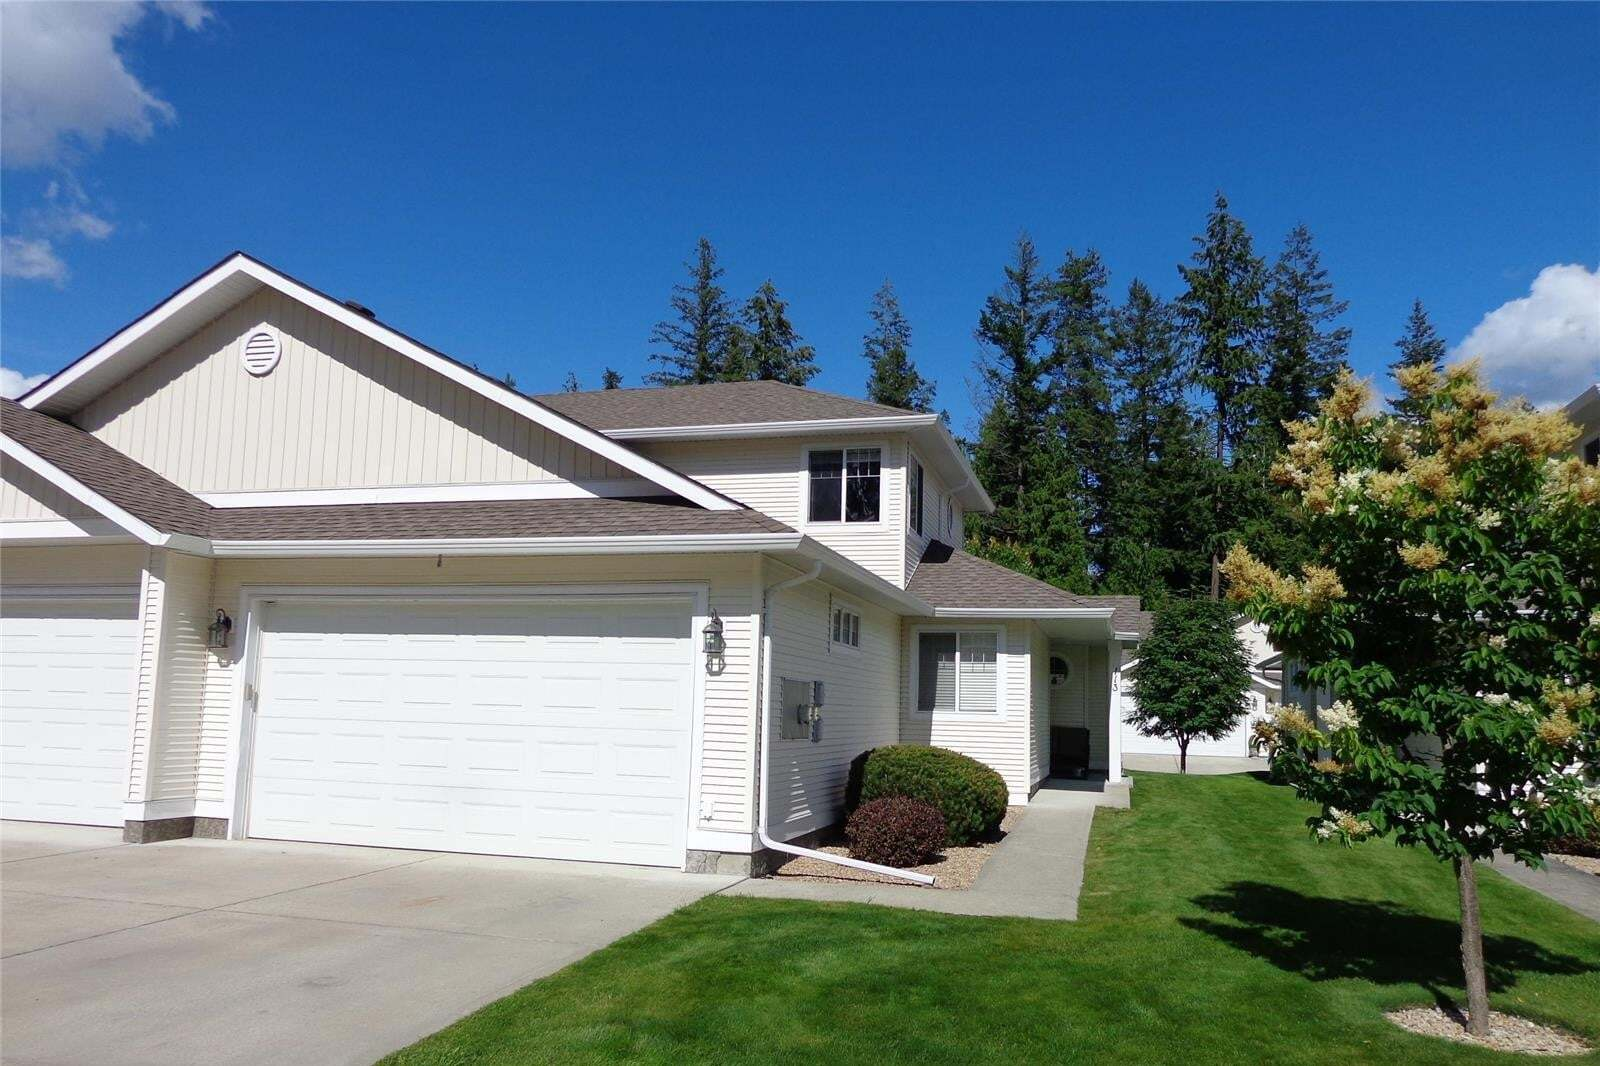 Townhouse for sale at 222 Martin St Sicamous British Columbia - MLS: 10210052